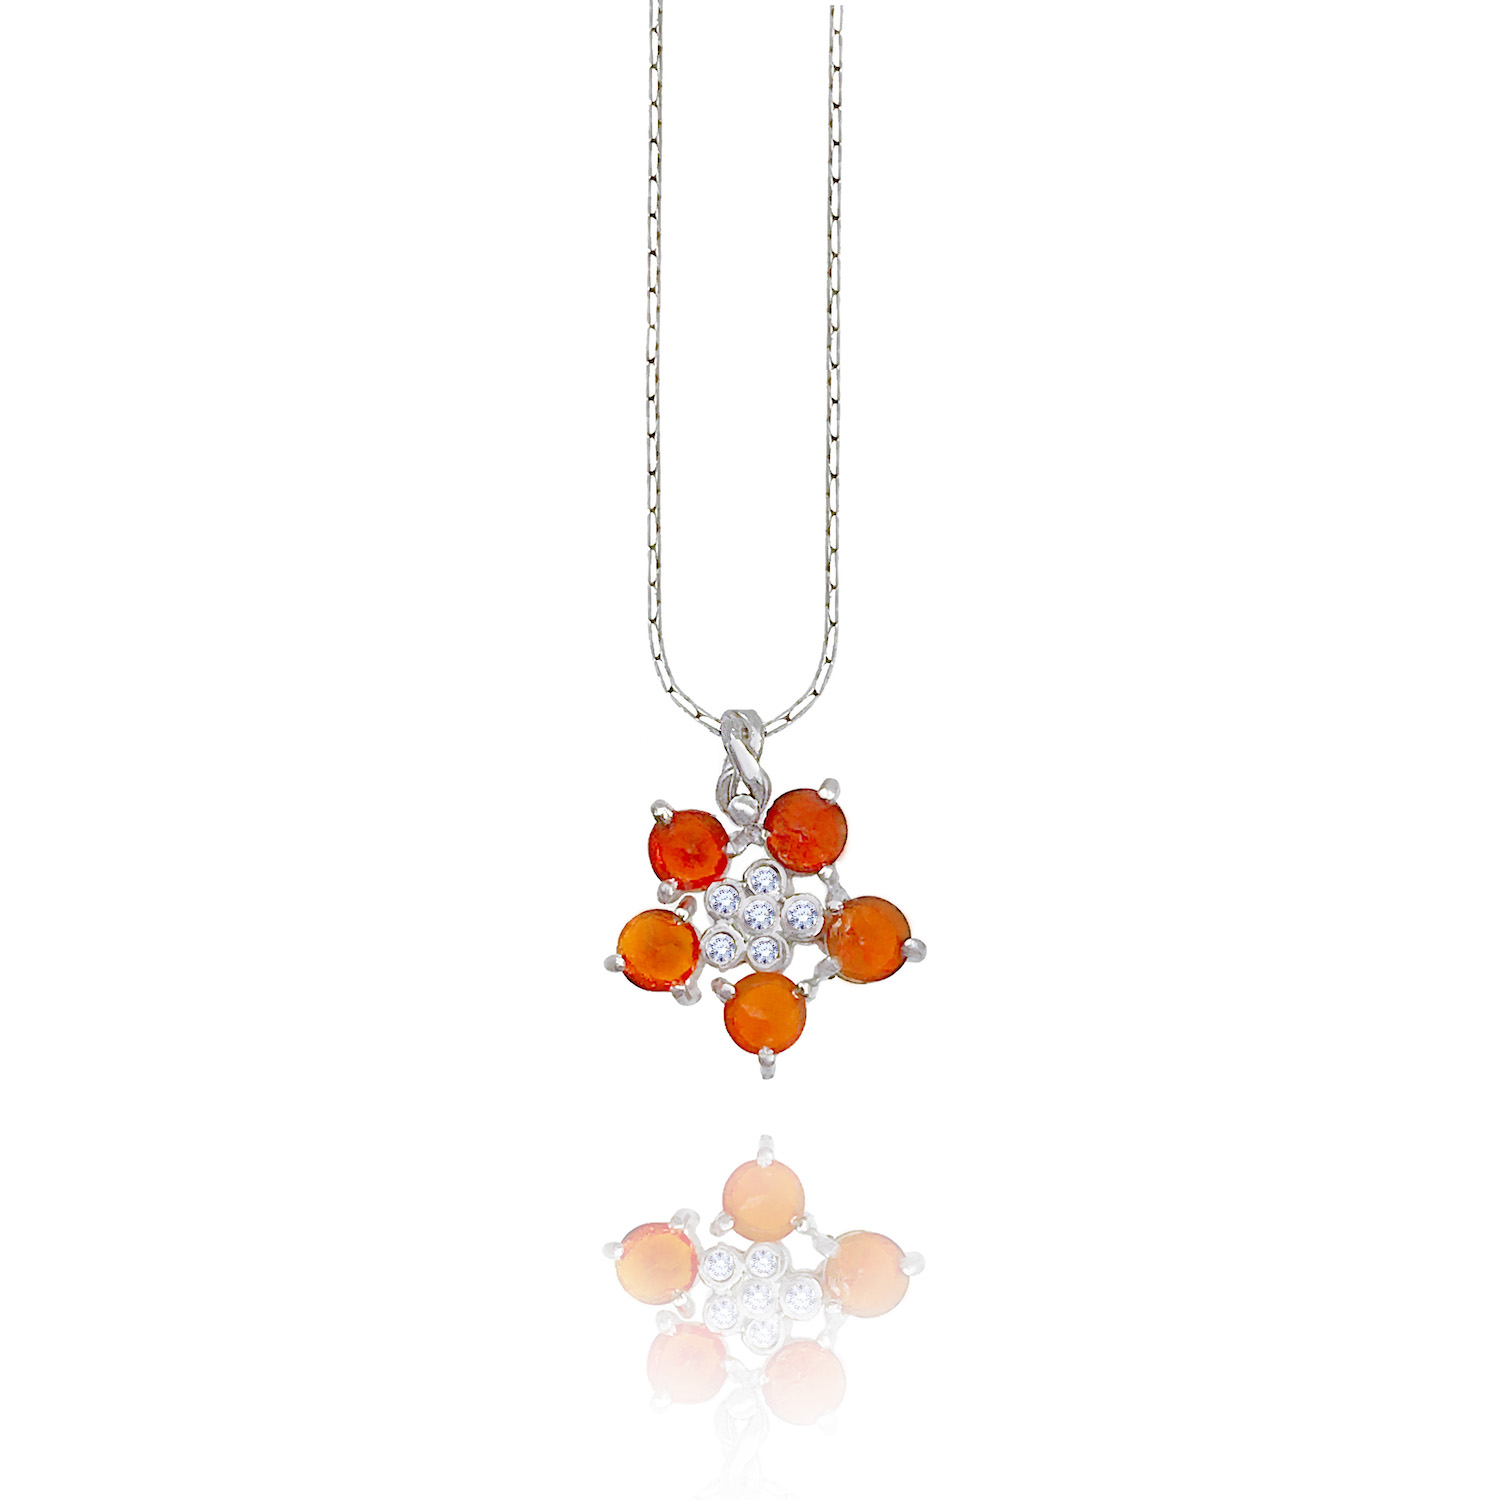 Forget-me-Not-Fire-Opal-Flower-Pendant-Necklace-14k-18k-JeweLyrie